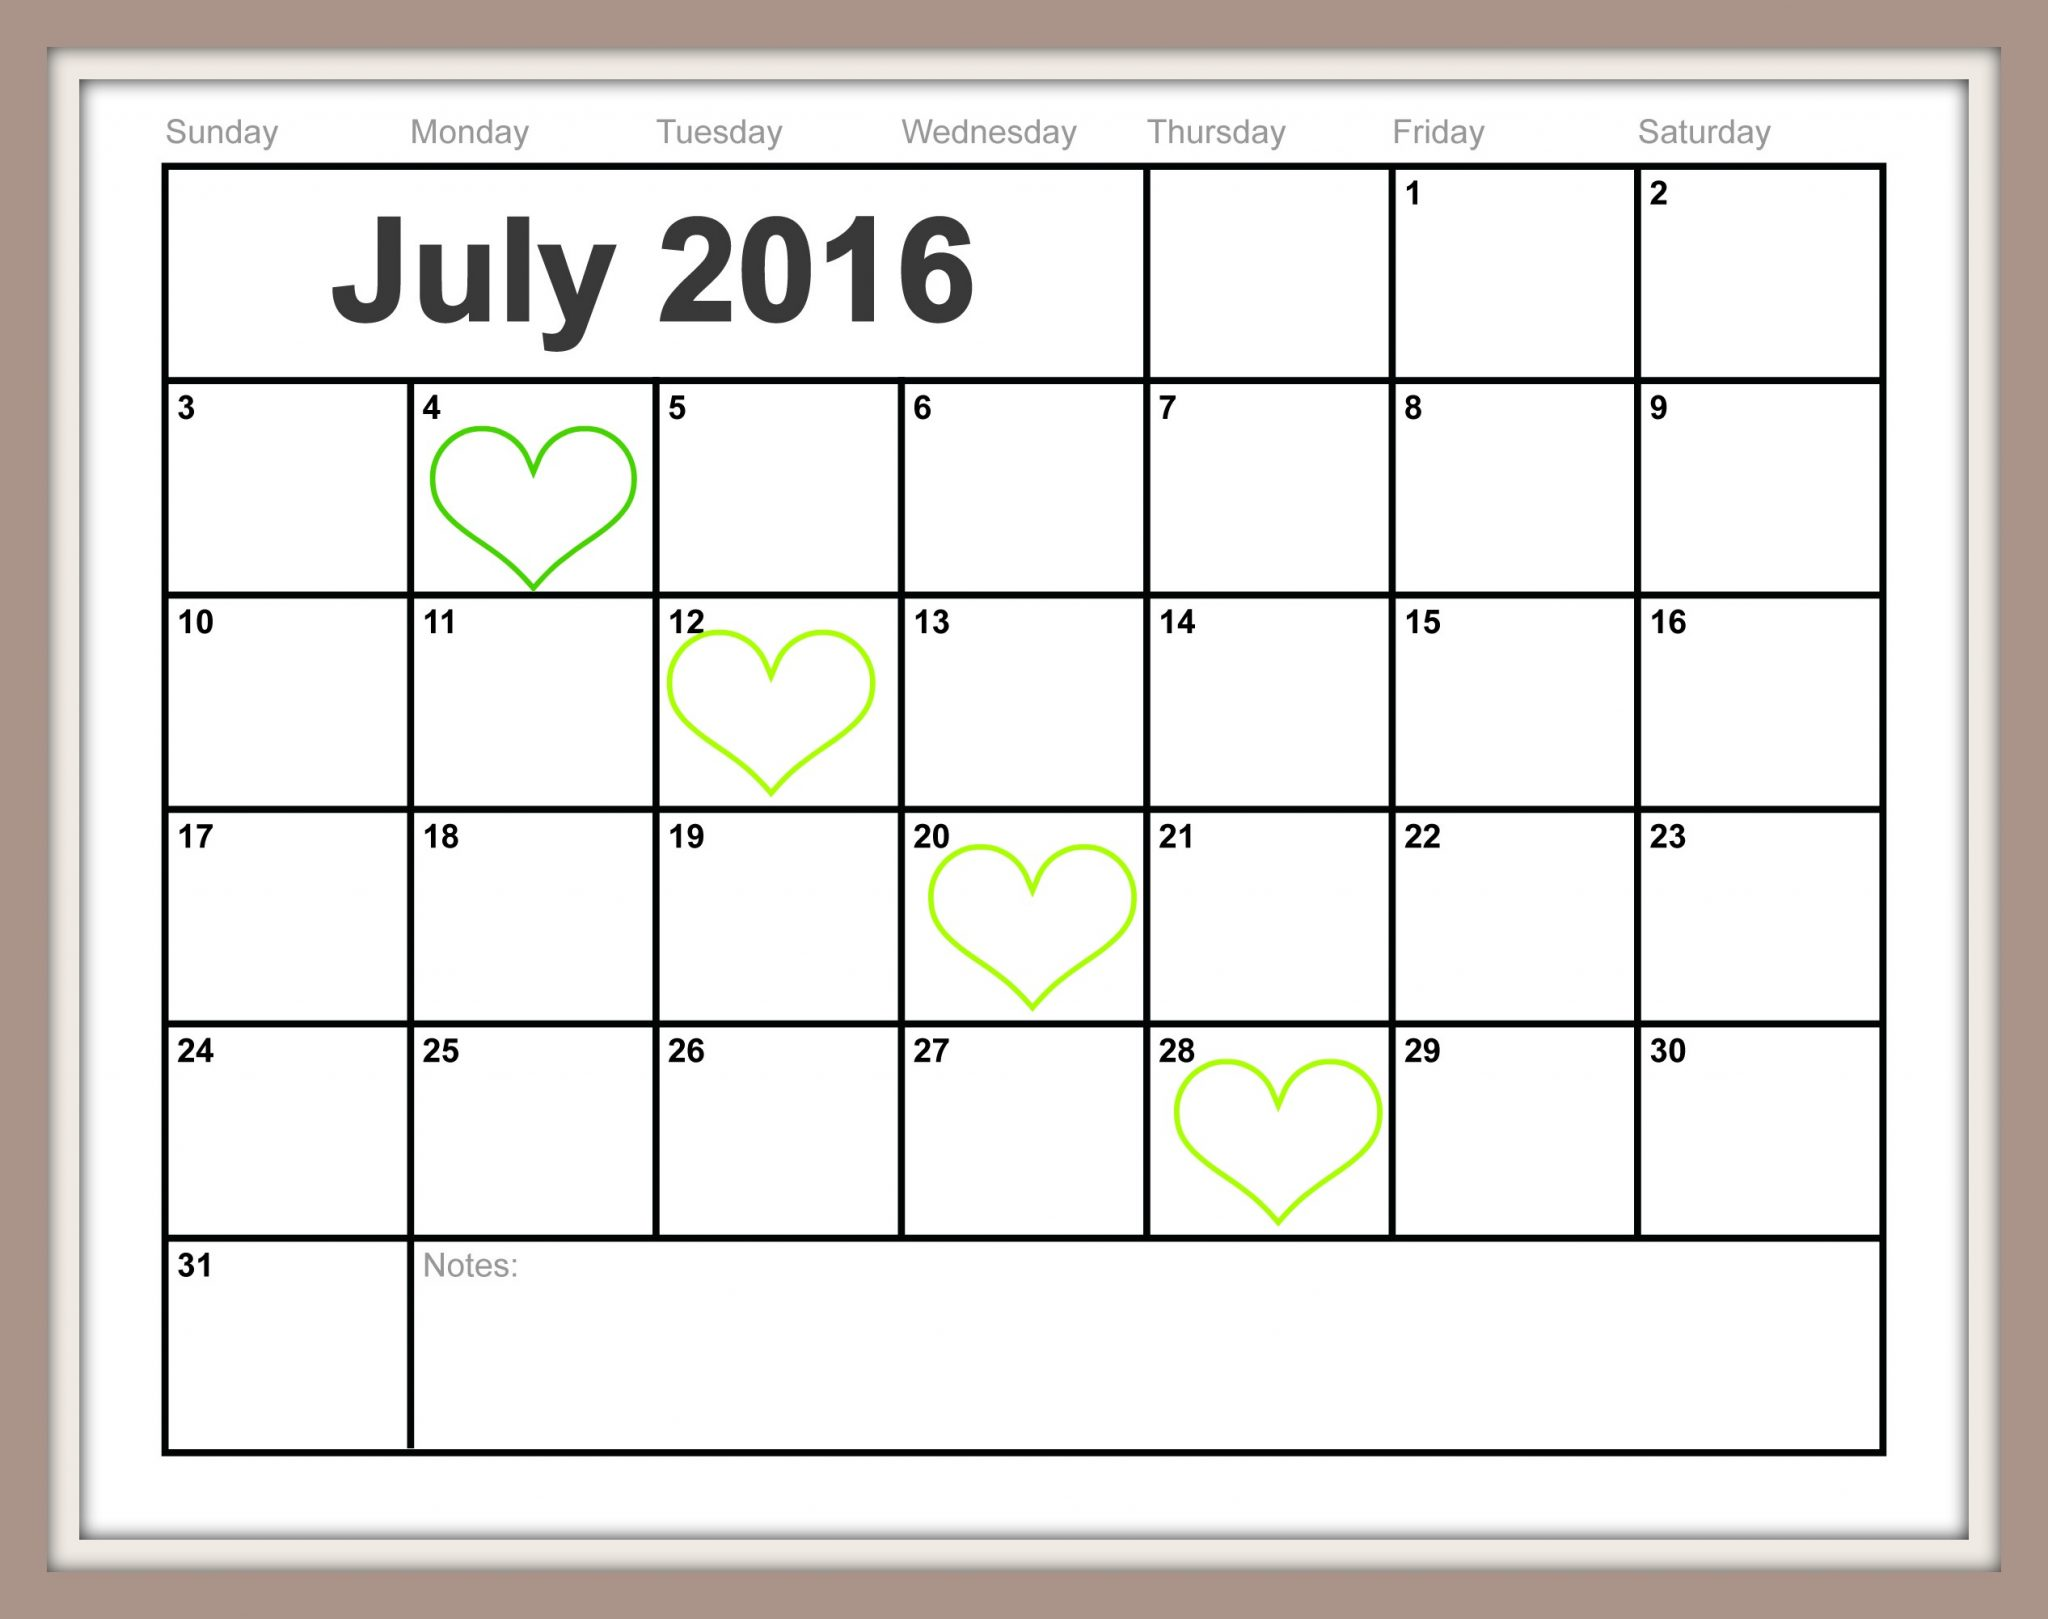 2016 Julian Calendar Free Printable July Calendar {Easy-Print